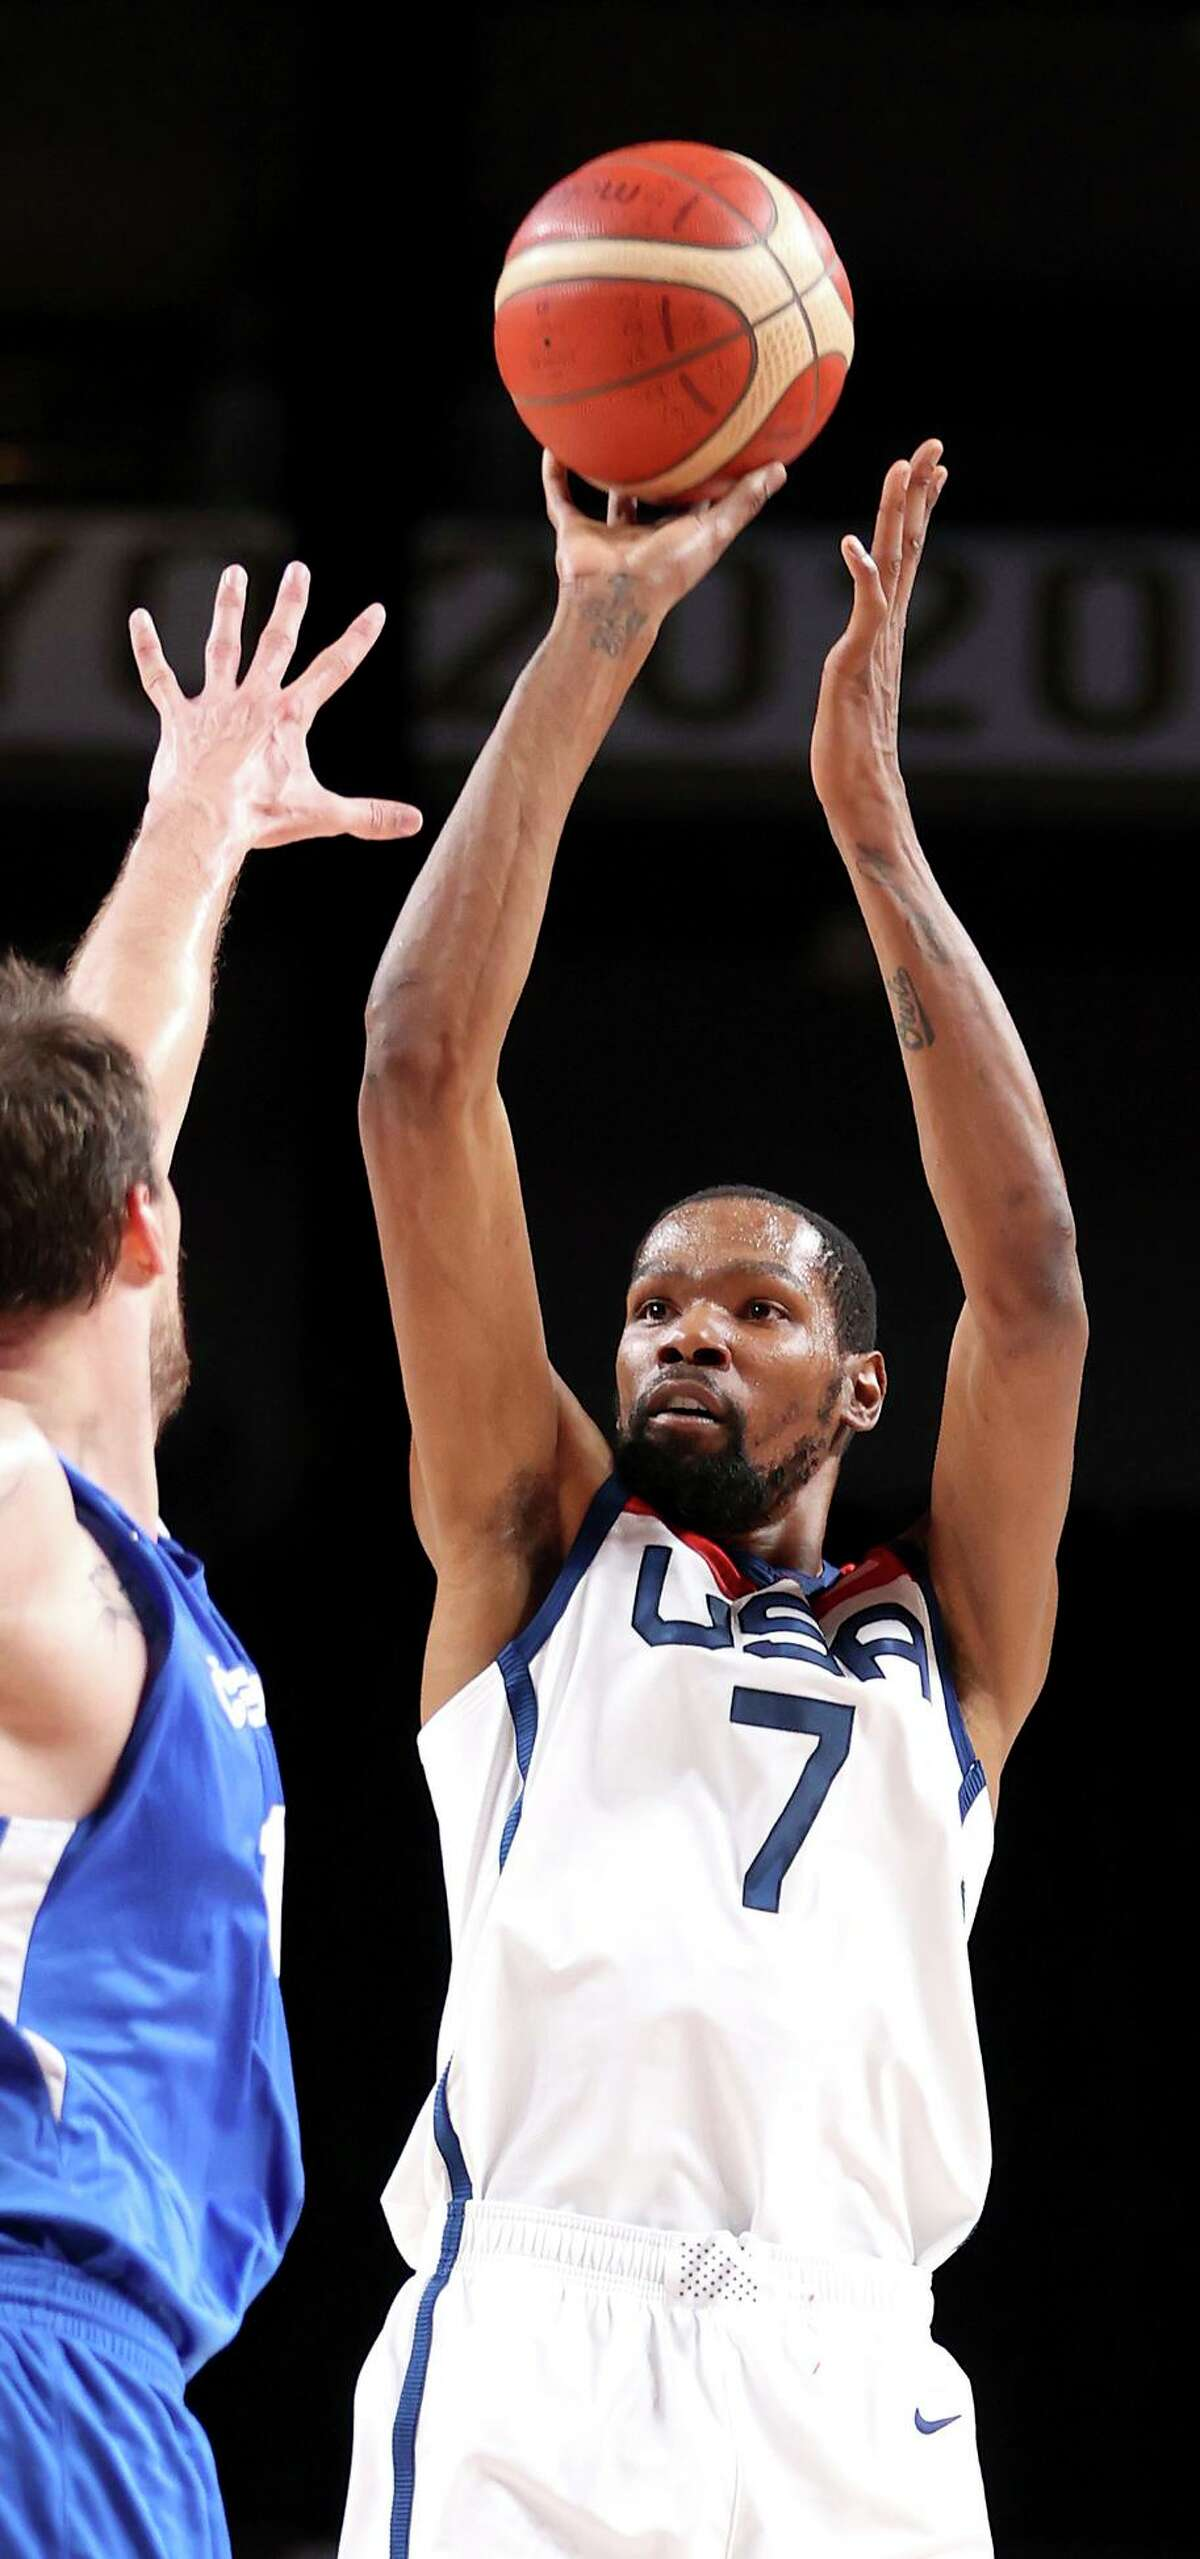 With 23 points Saturday, Kevin Durant became the top scorer in U.S. men's basketball Olympic history.